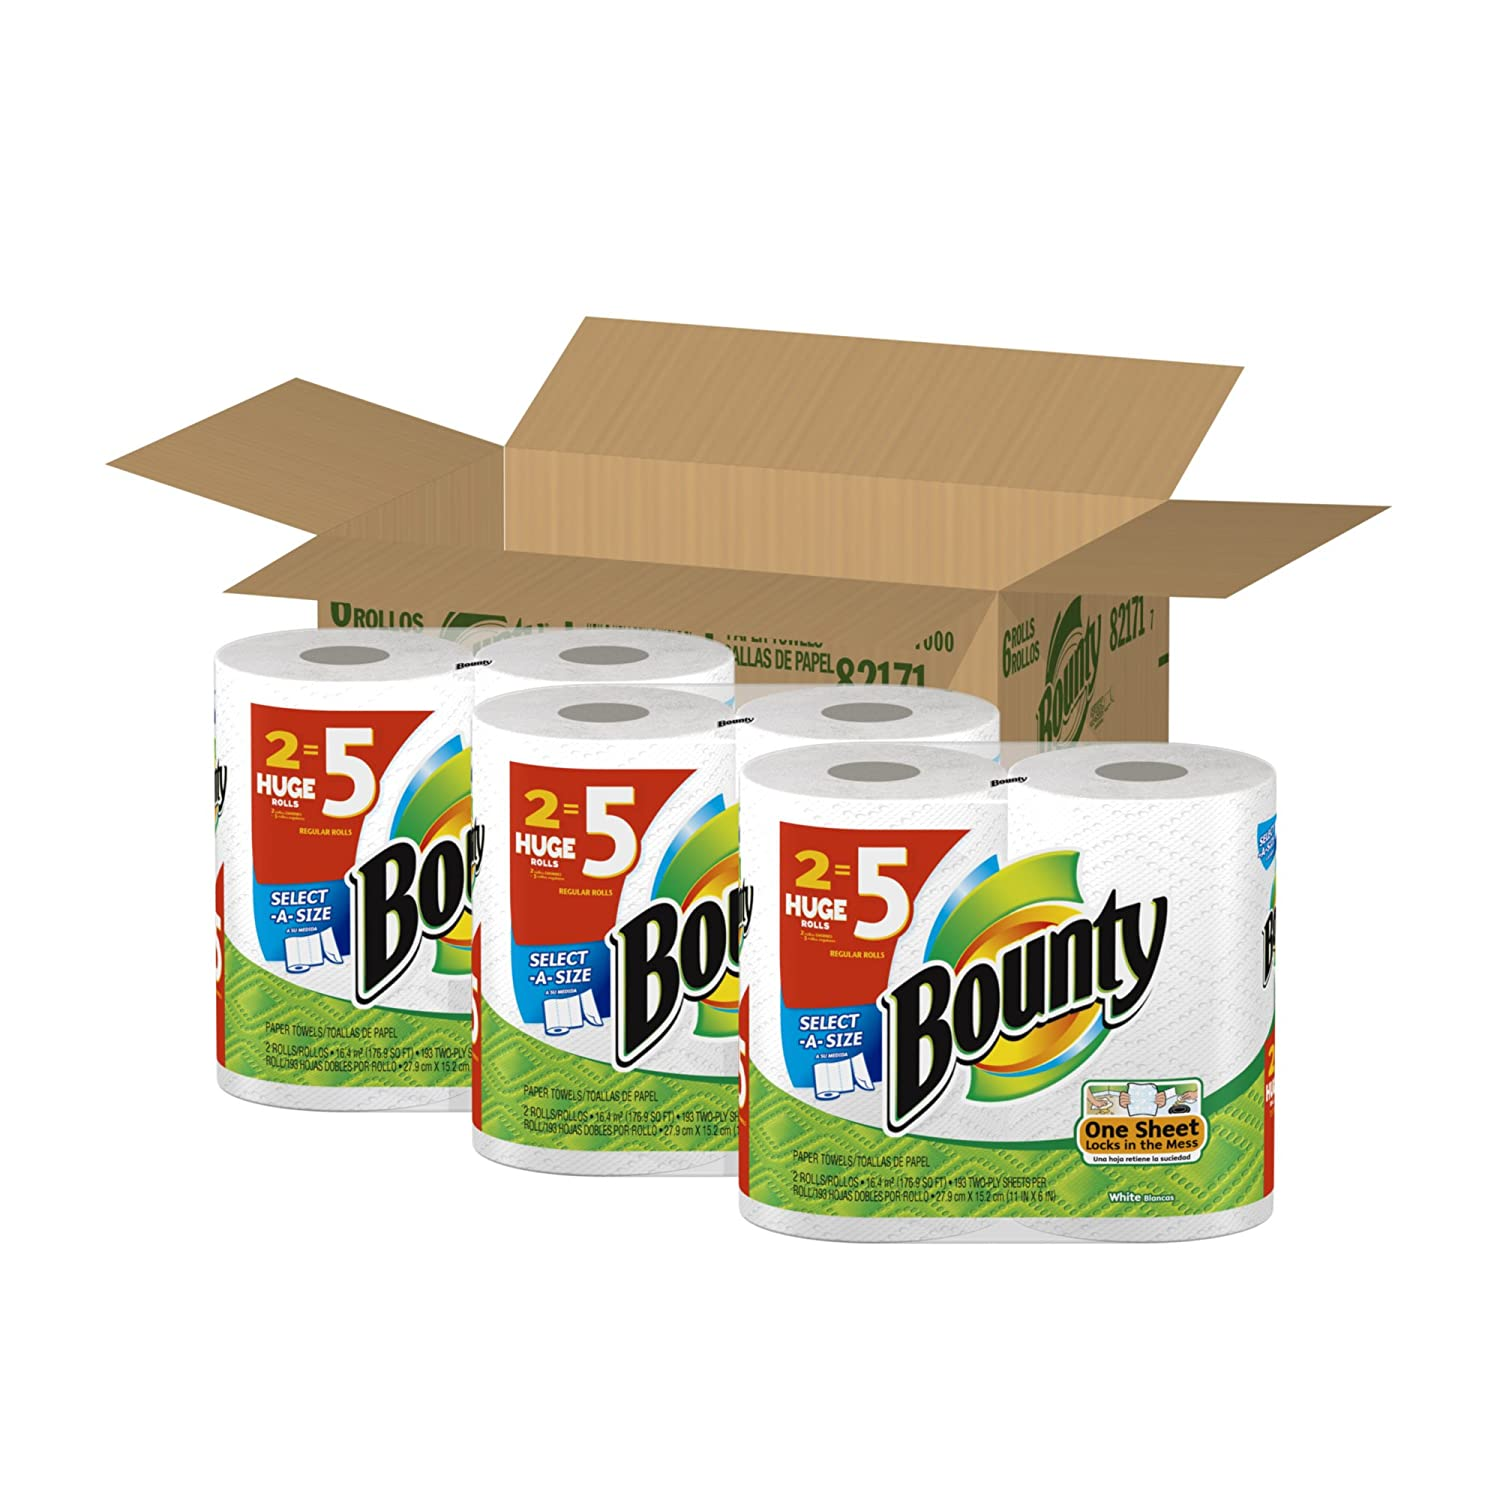 Bounty Select A Paper Towels, Huge Size, 6 Count $12.97